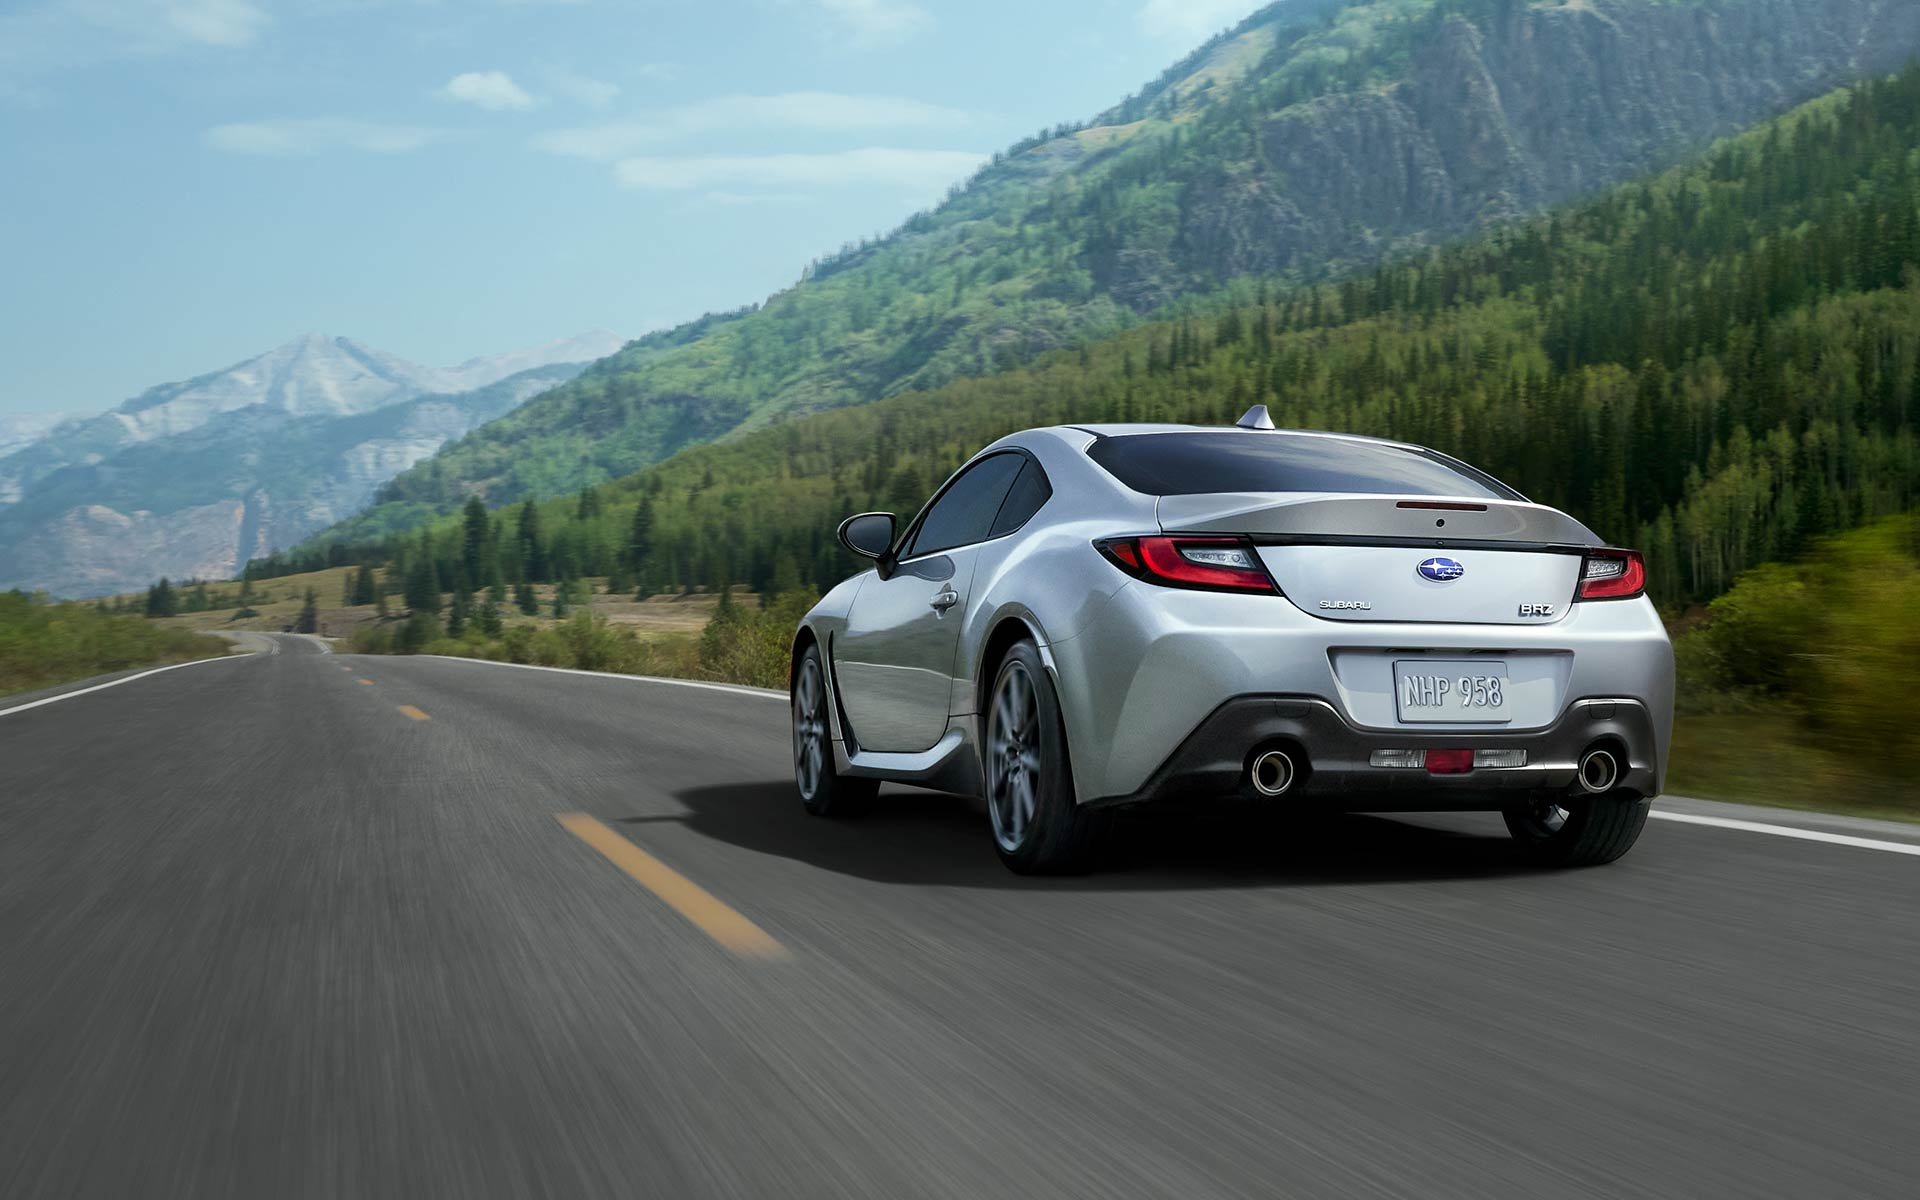 2022 Subaru BRZ driving on a mountain road